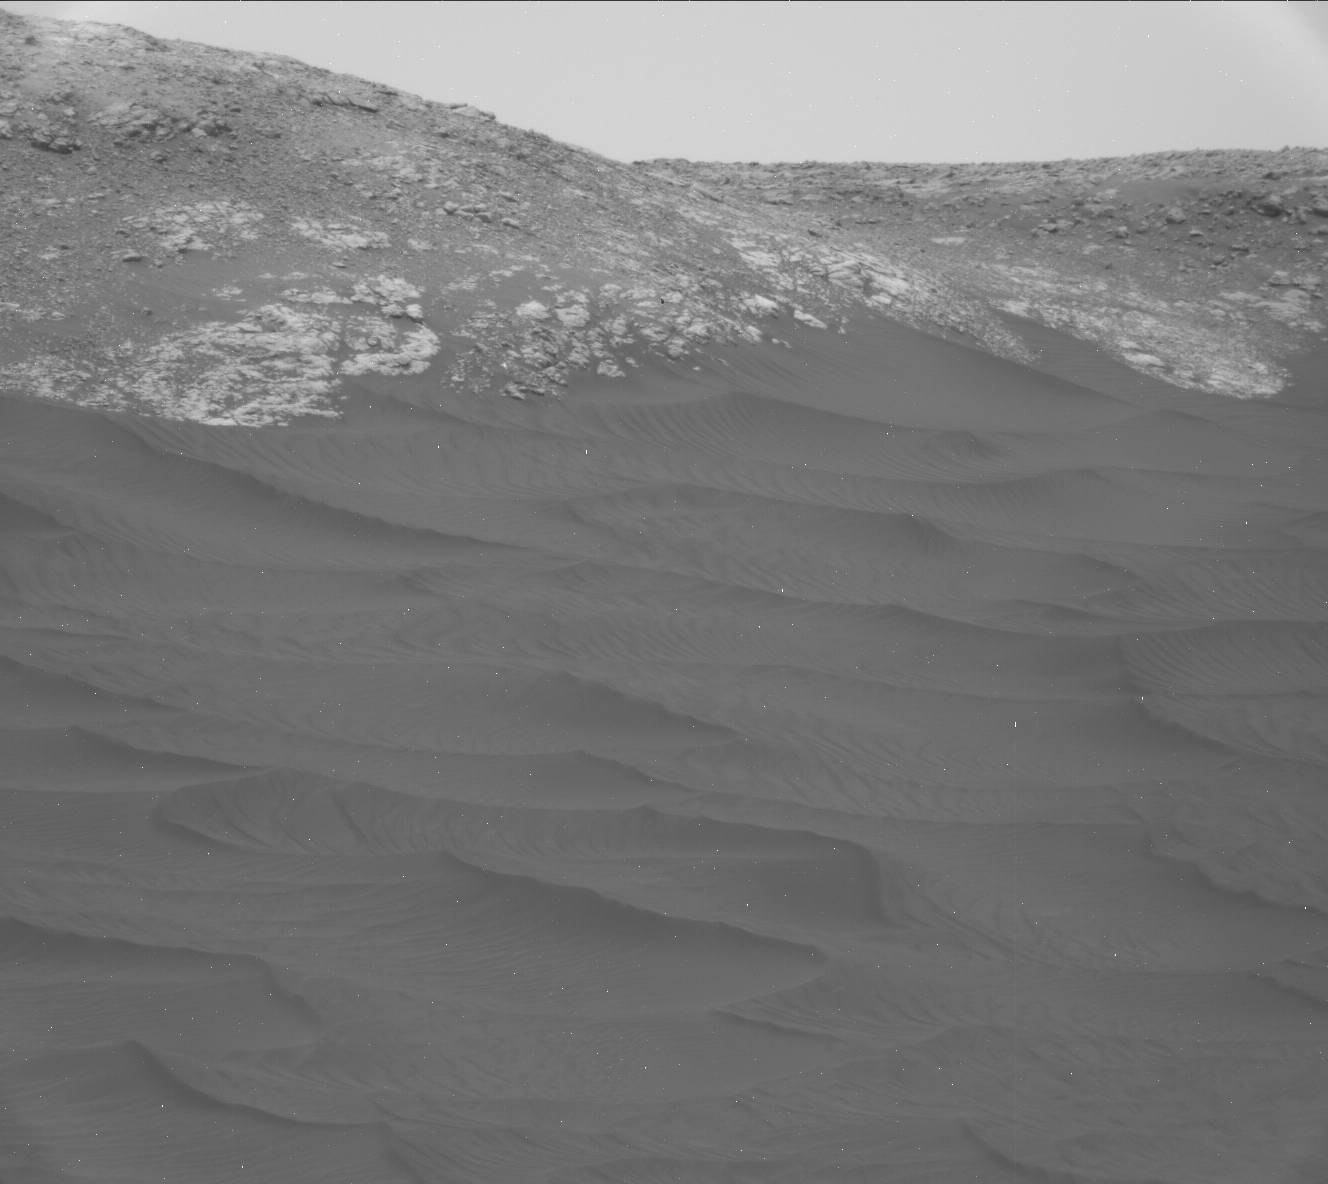 MARS: CURIOSITY u krateru  GALE Vol II. - Page 36 2371MR0125740121001969C00_DXXX